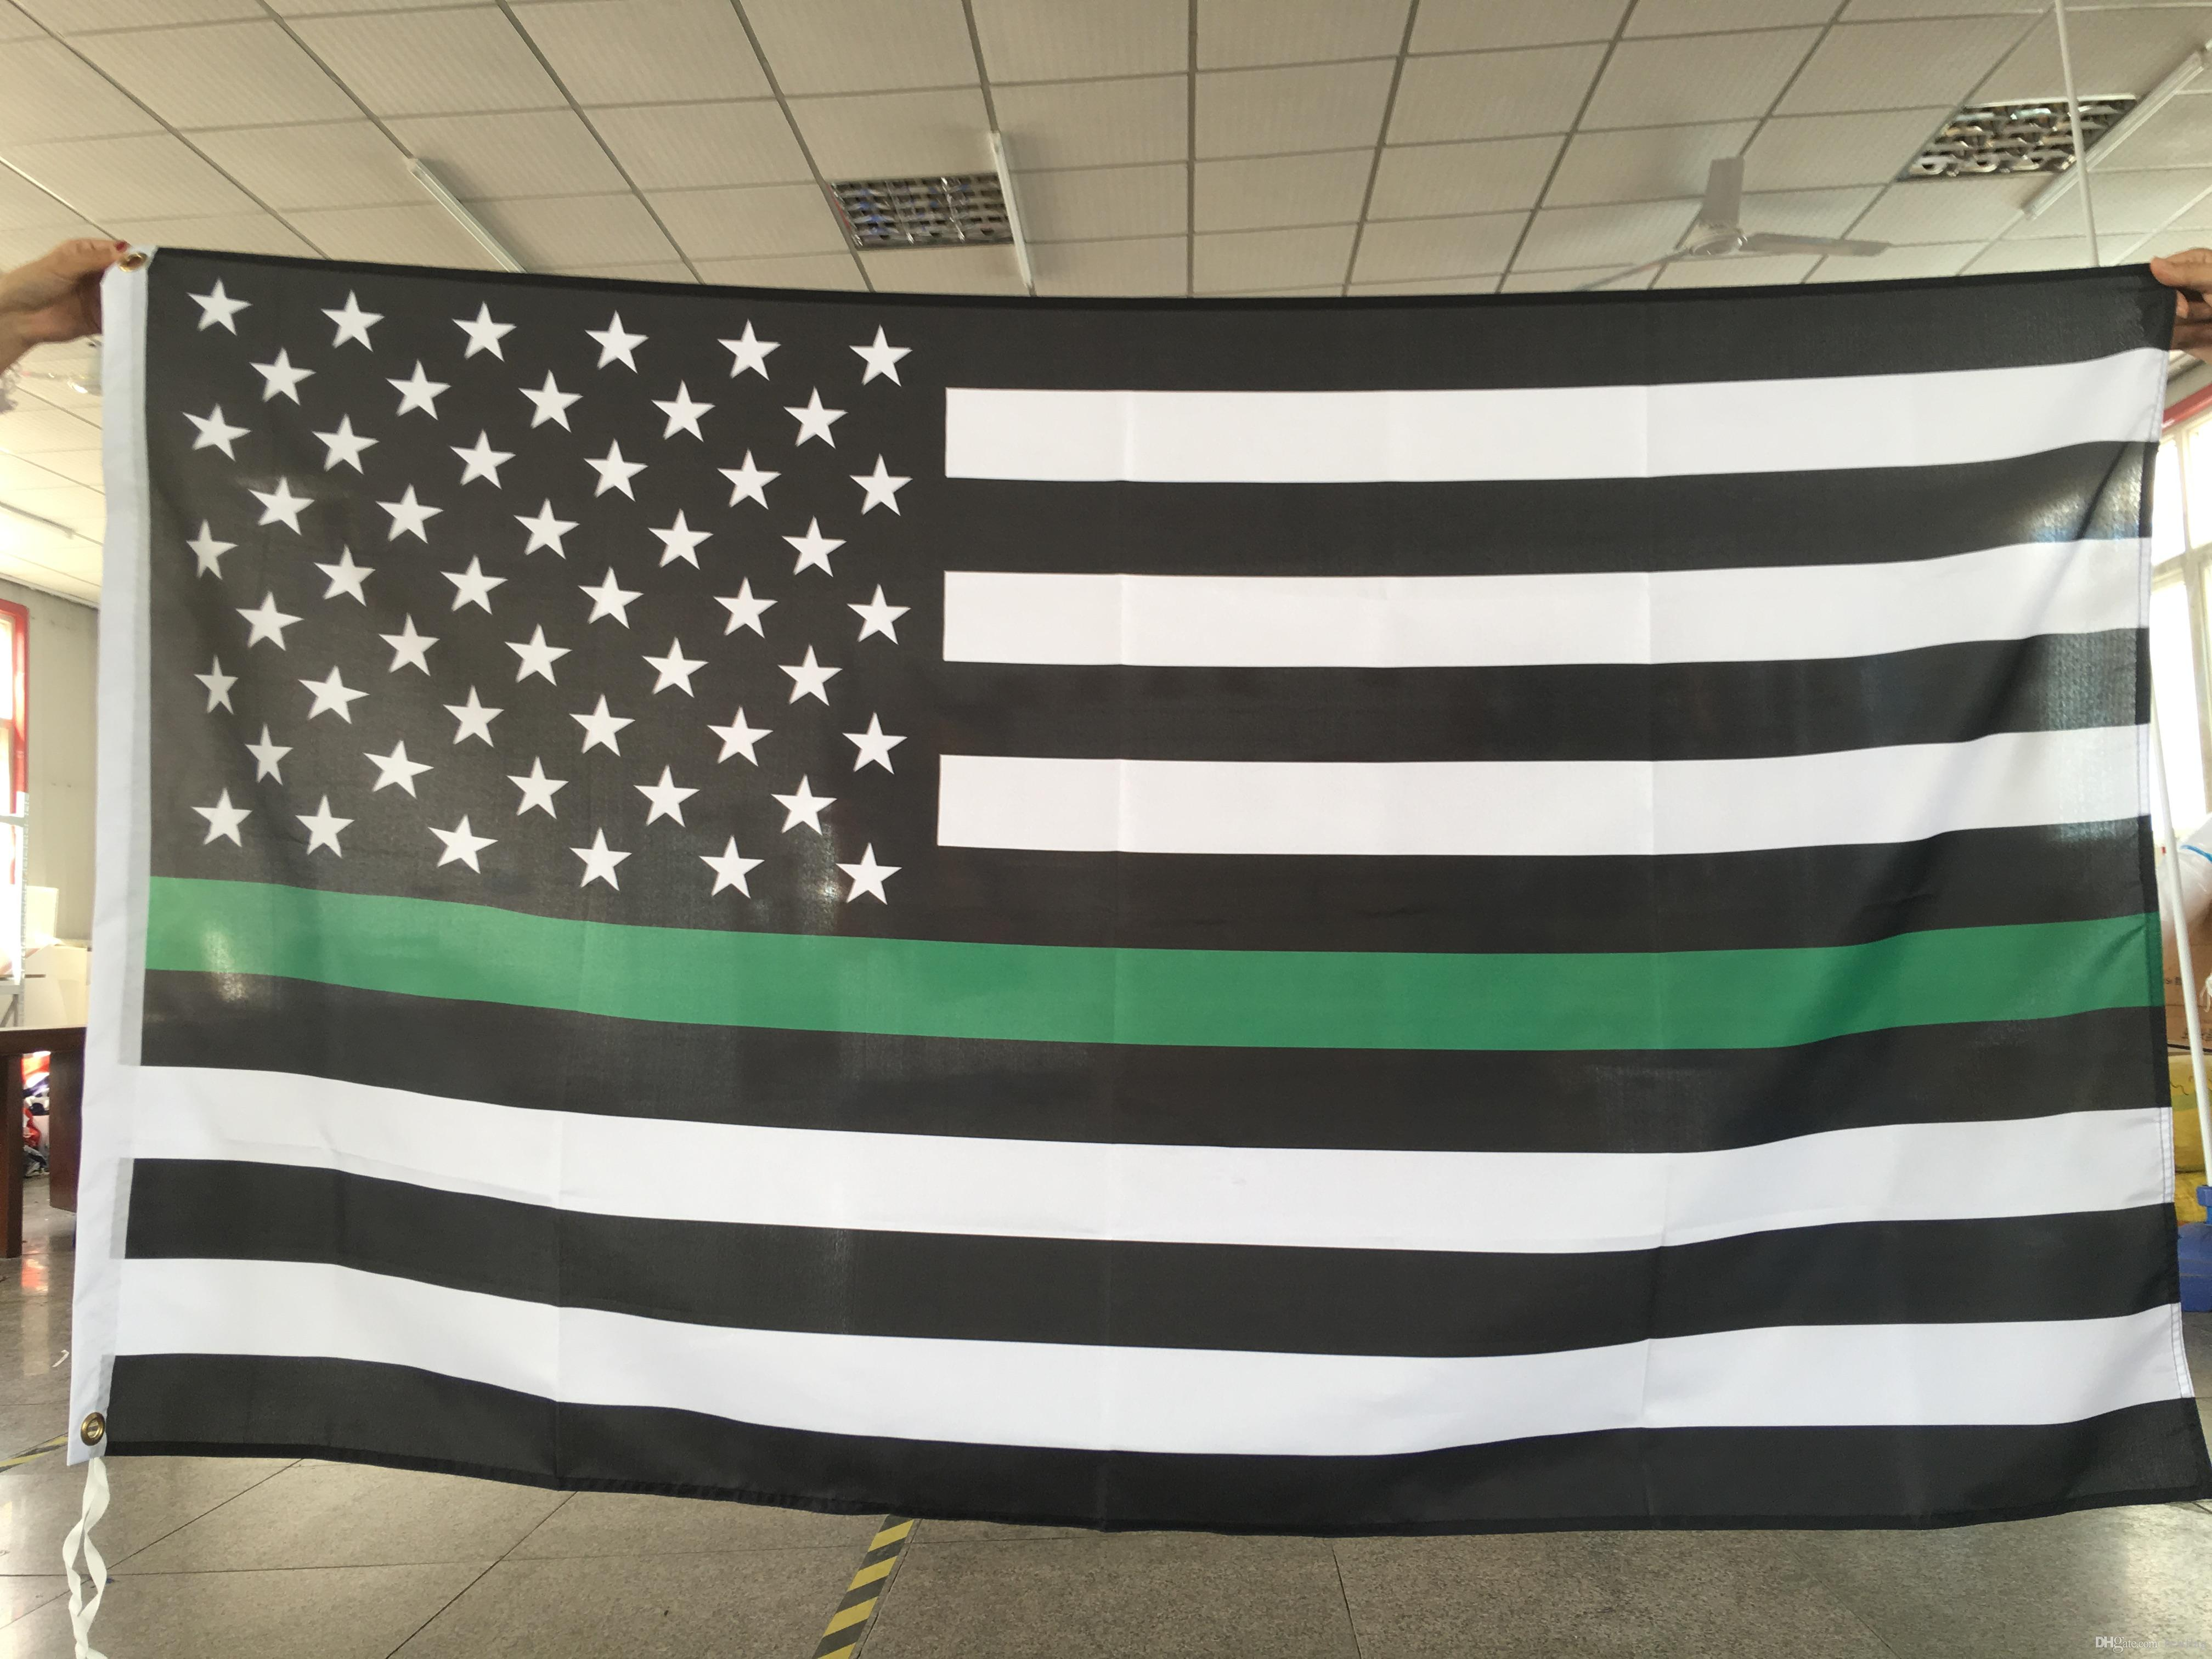 f78a5ceaf476 2019 Thin Green Line American Flag Flying Design 3x5 Ft 100D Polyester  Banners With Two Metal Grommets From Bestflag